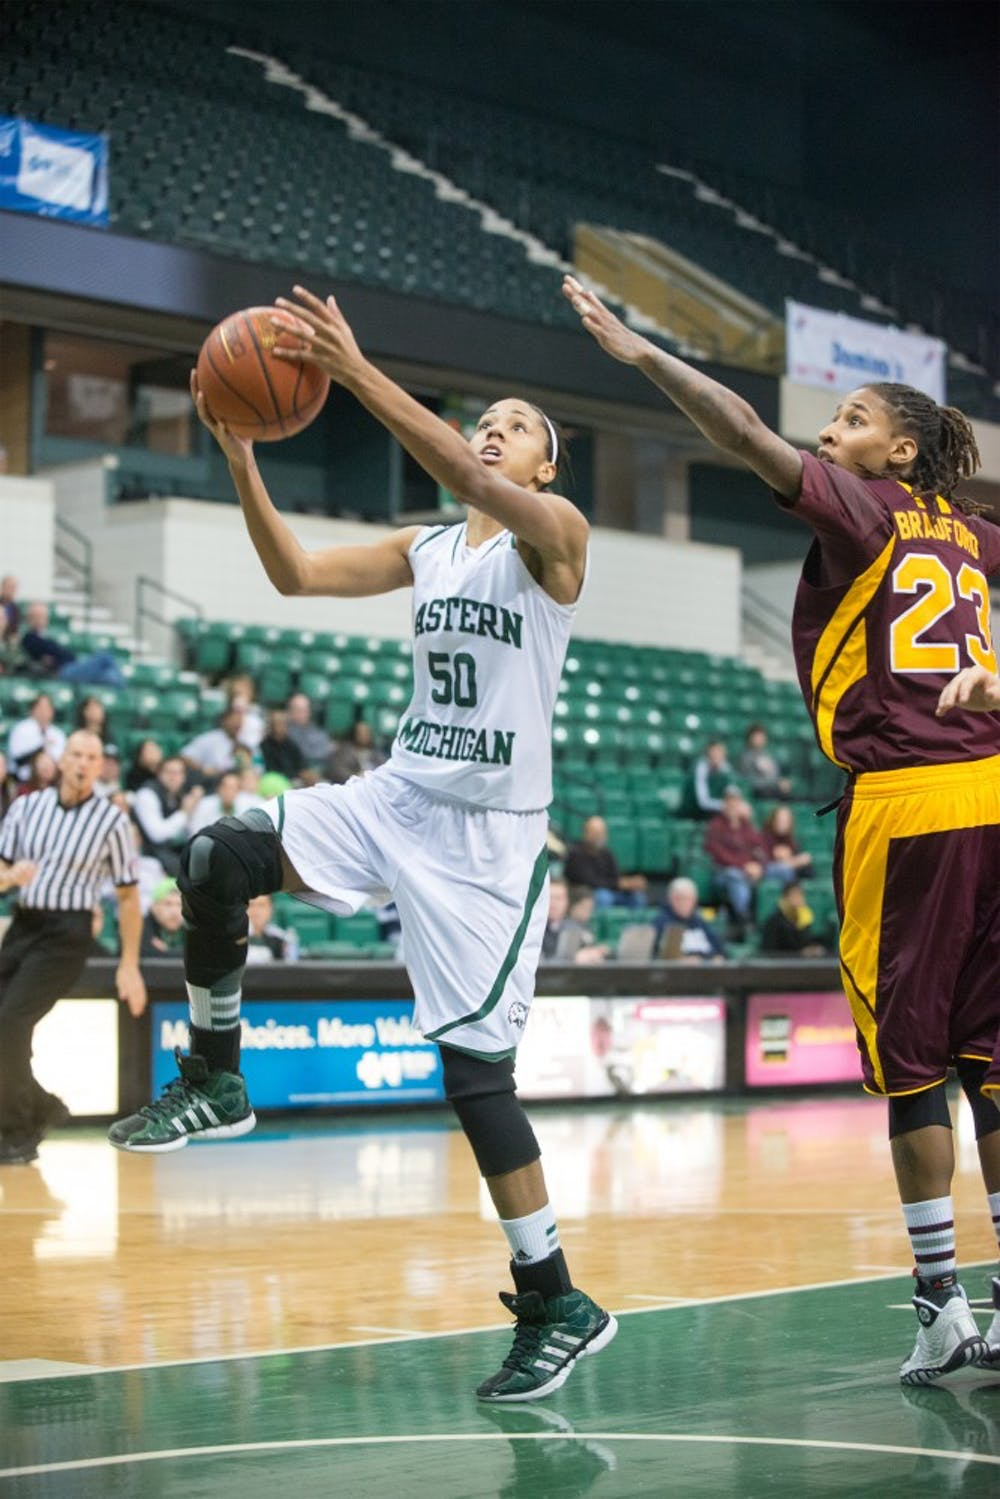 Women's basketball team to hold tryouts